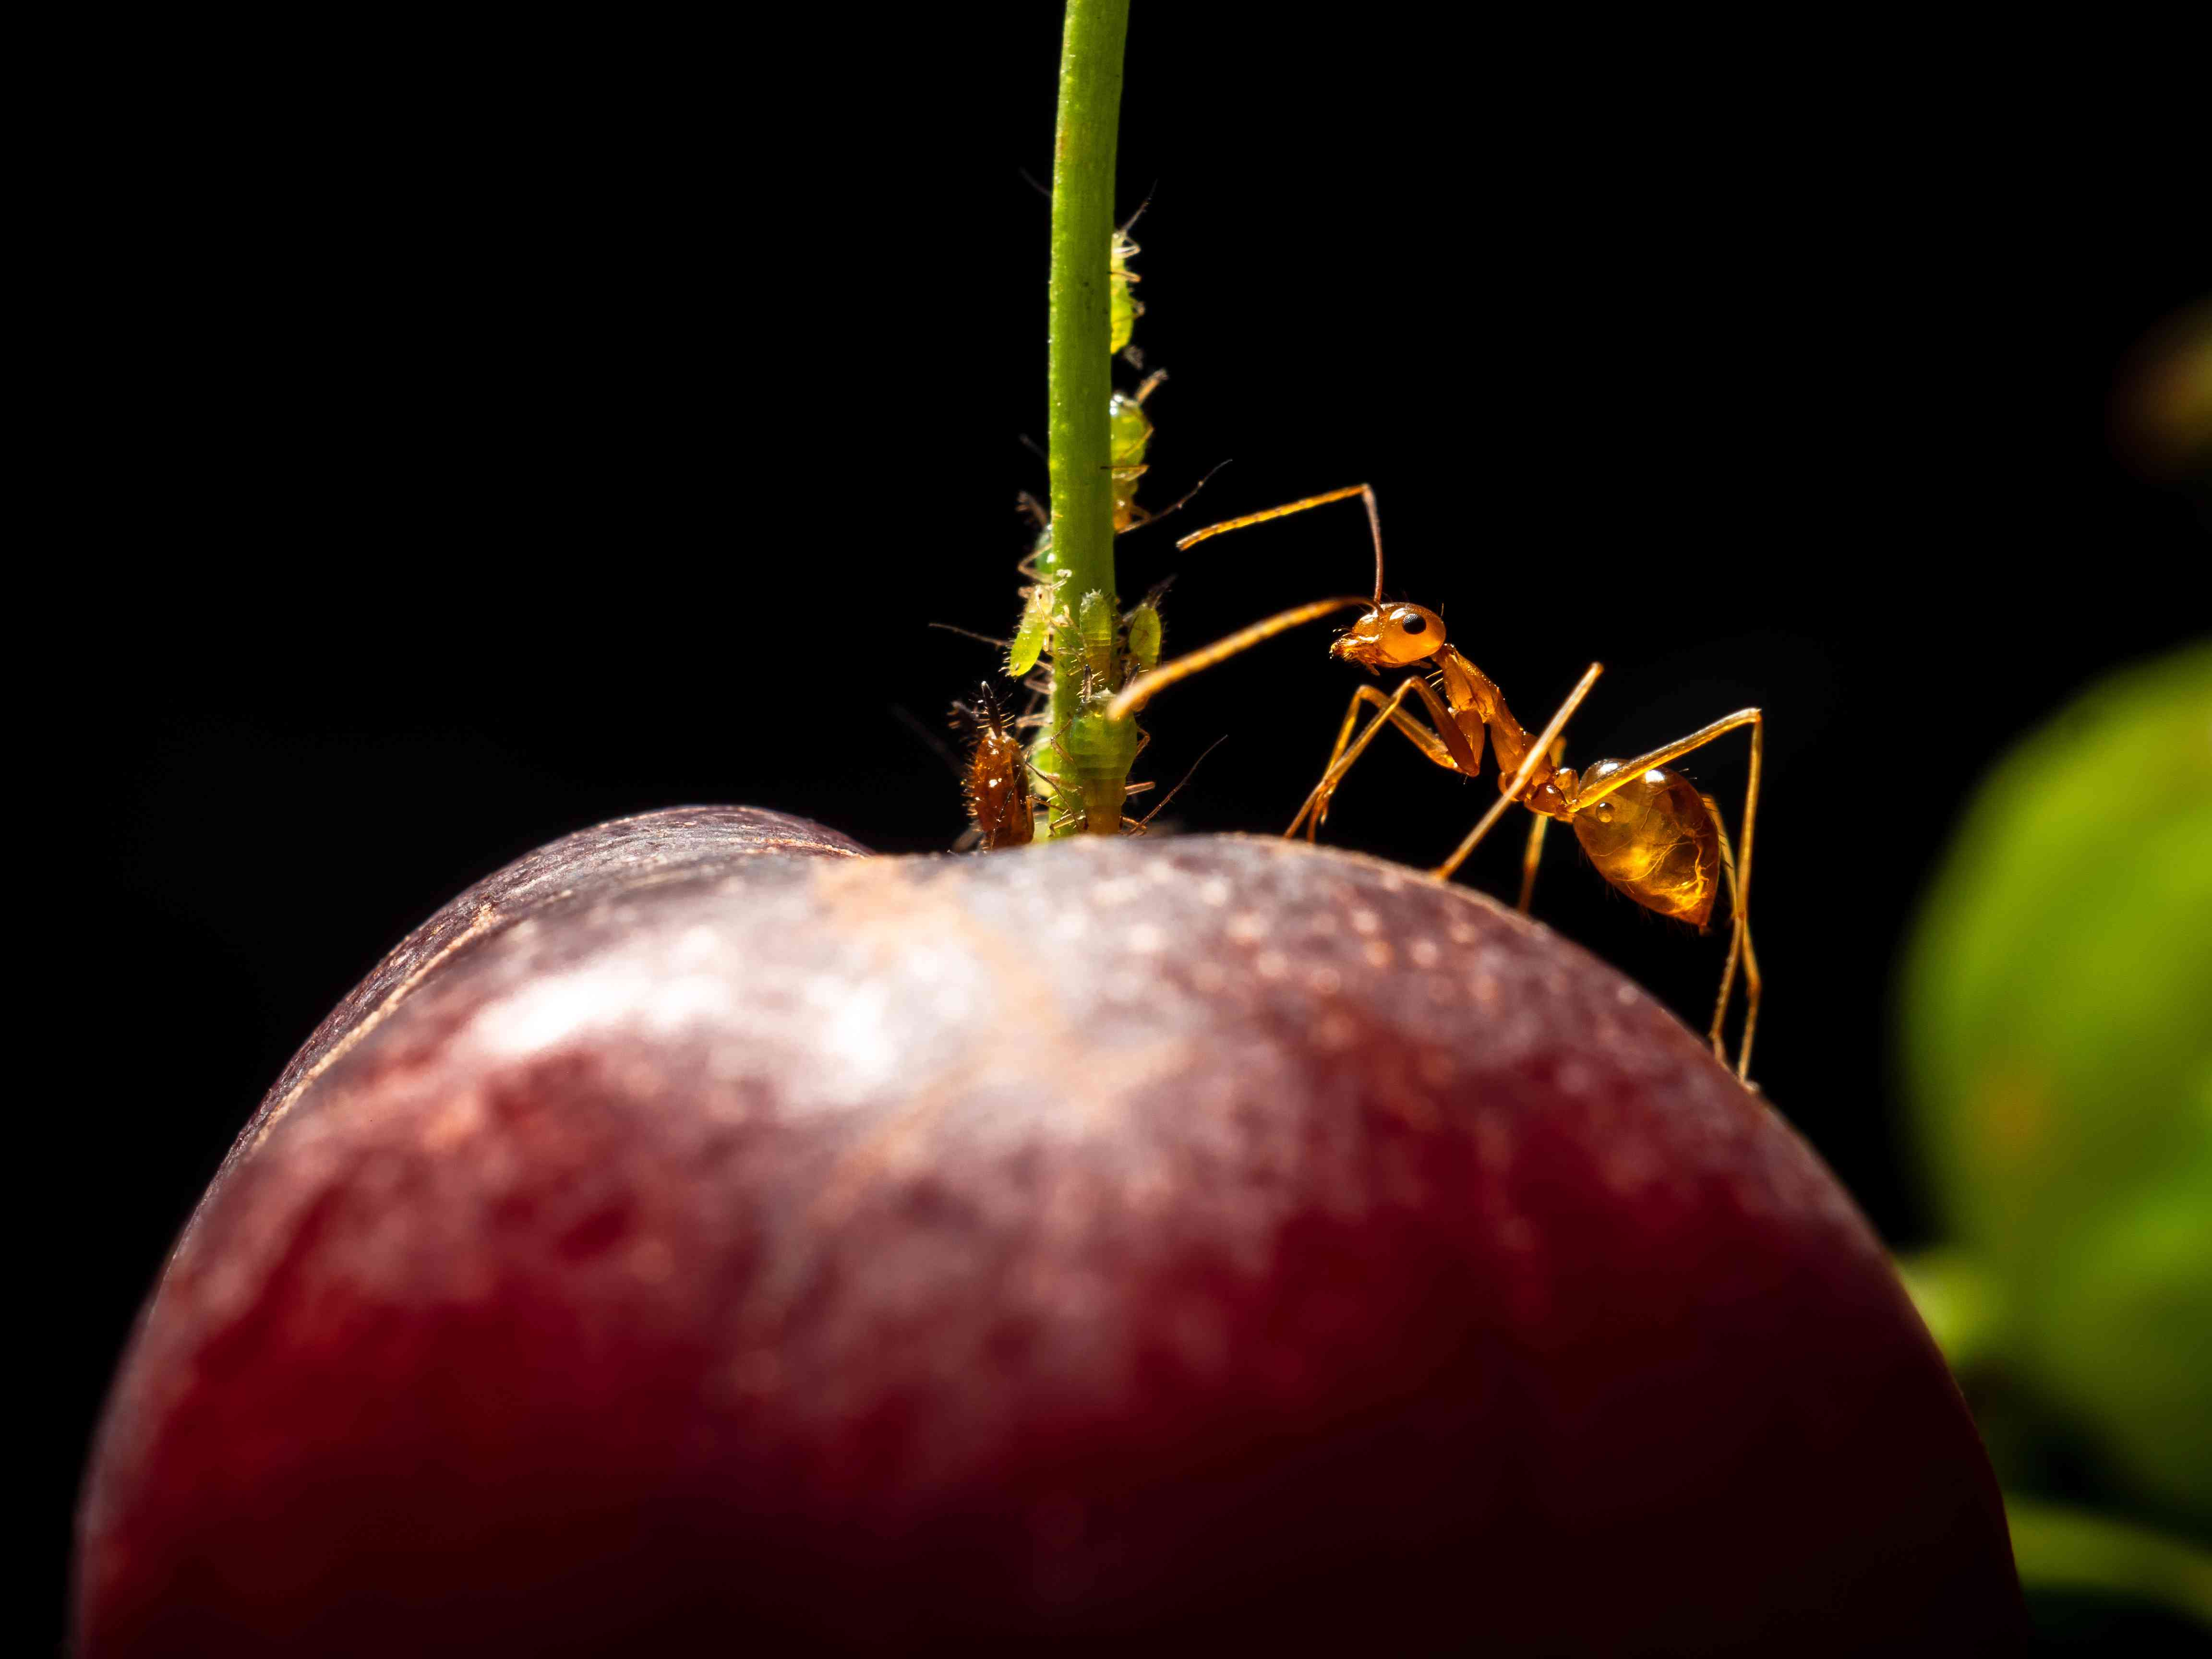 Yellow crazy ant protect aphids on a cherry